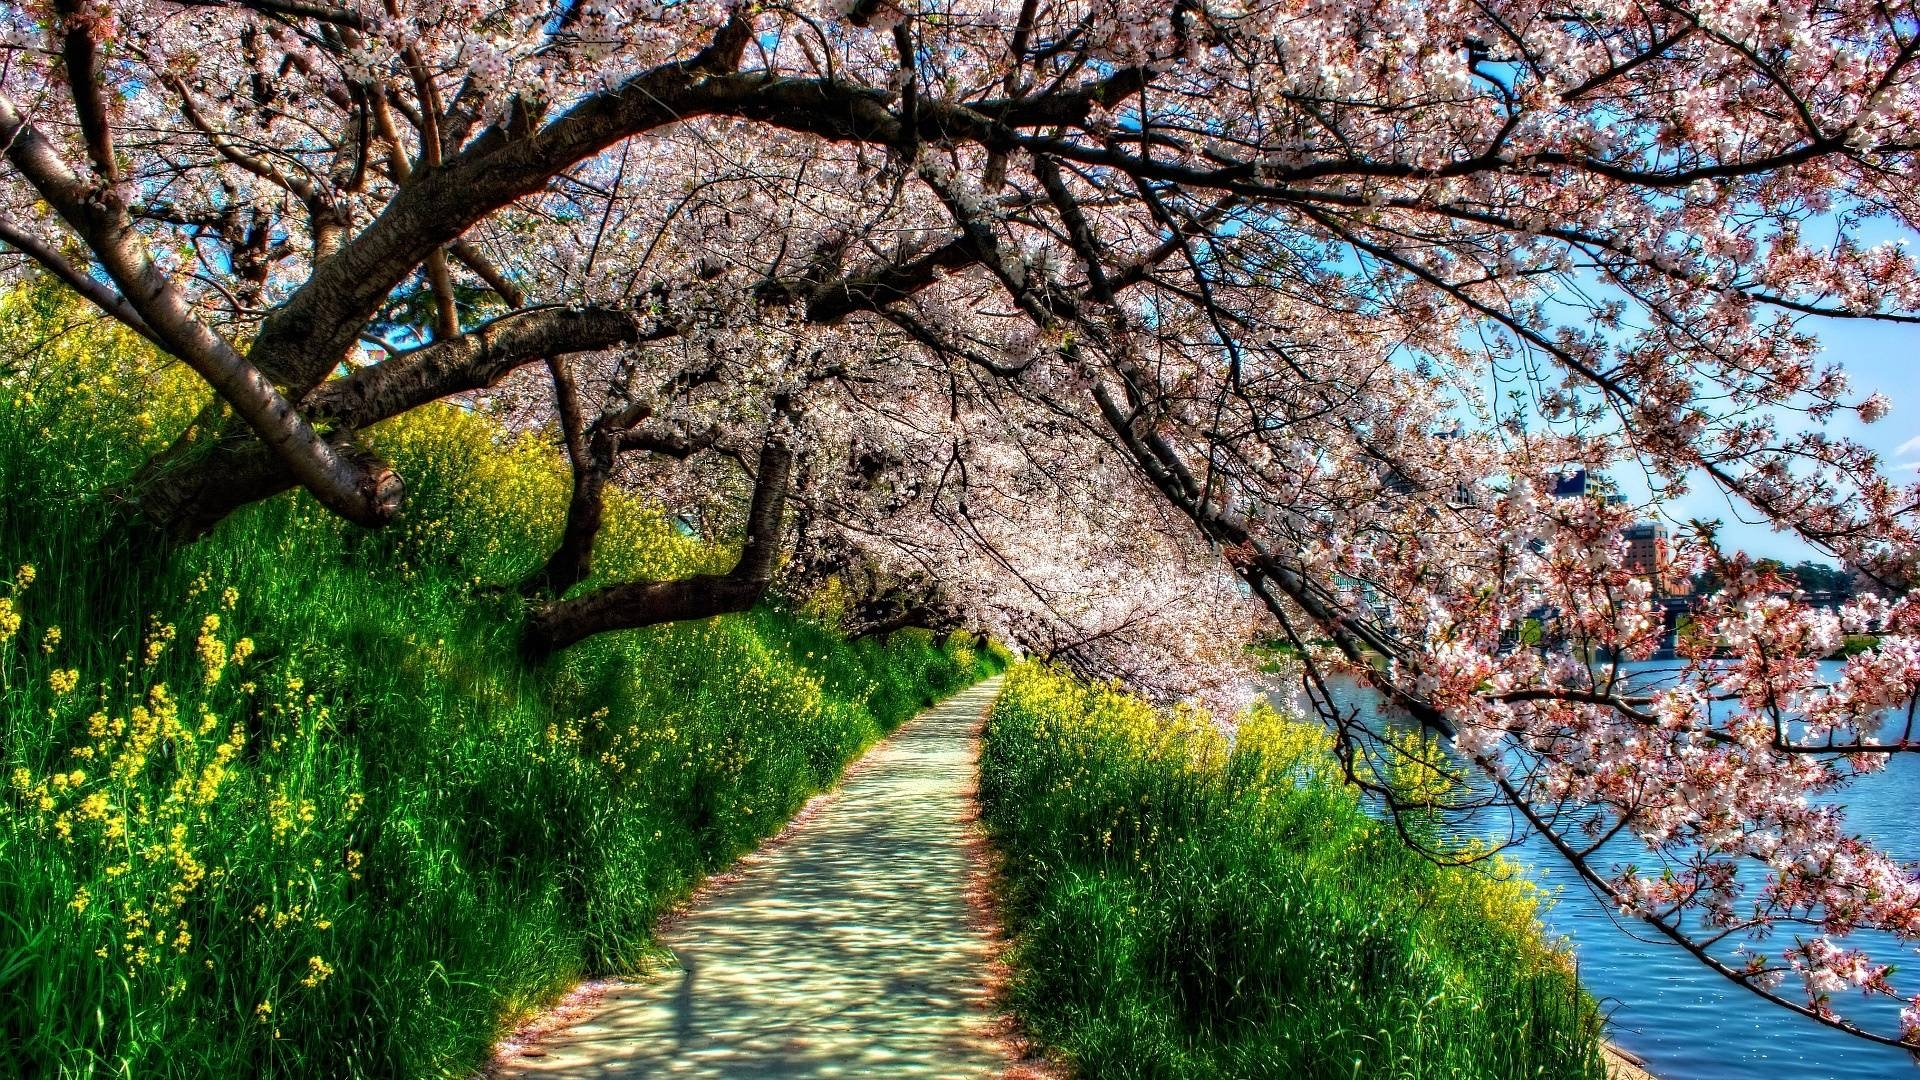 10 Top Spring Hd Wallpaper 1920X1080 FULL HD 1080p For PC Background